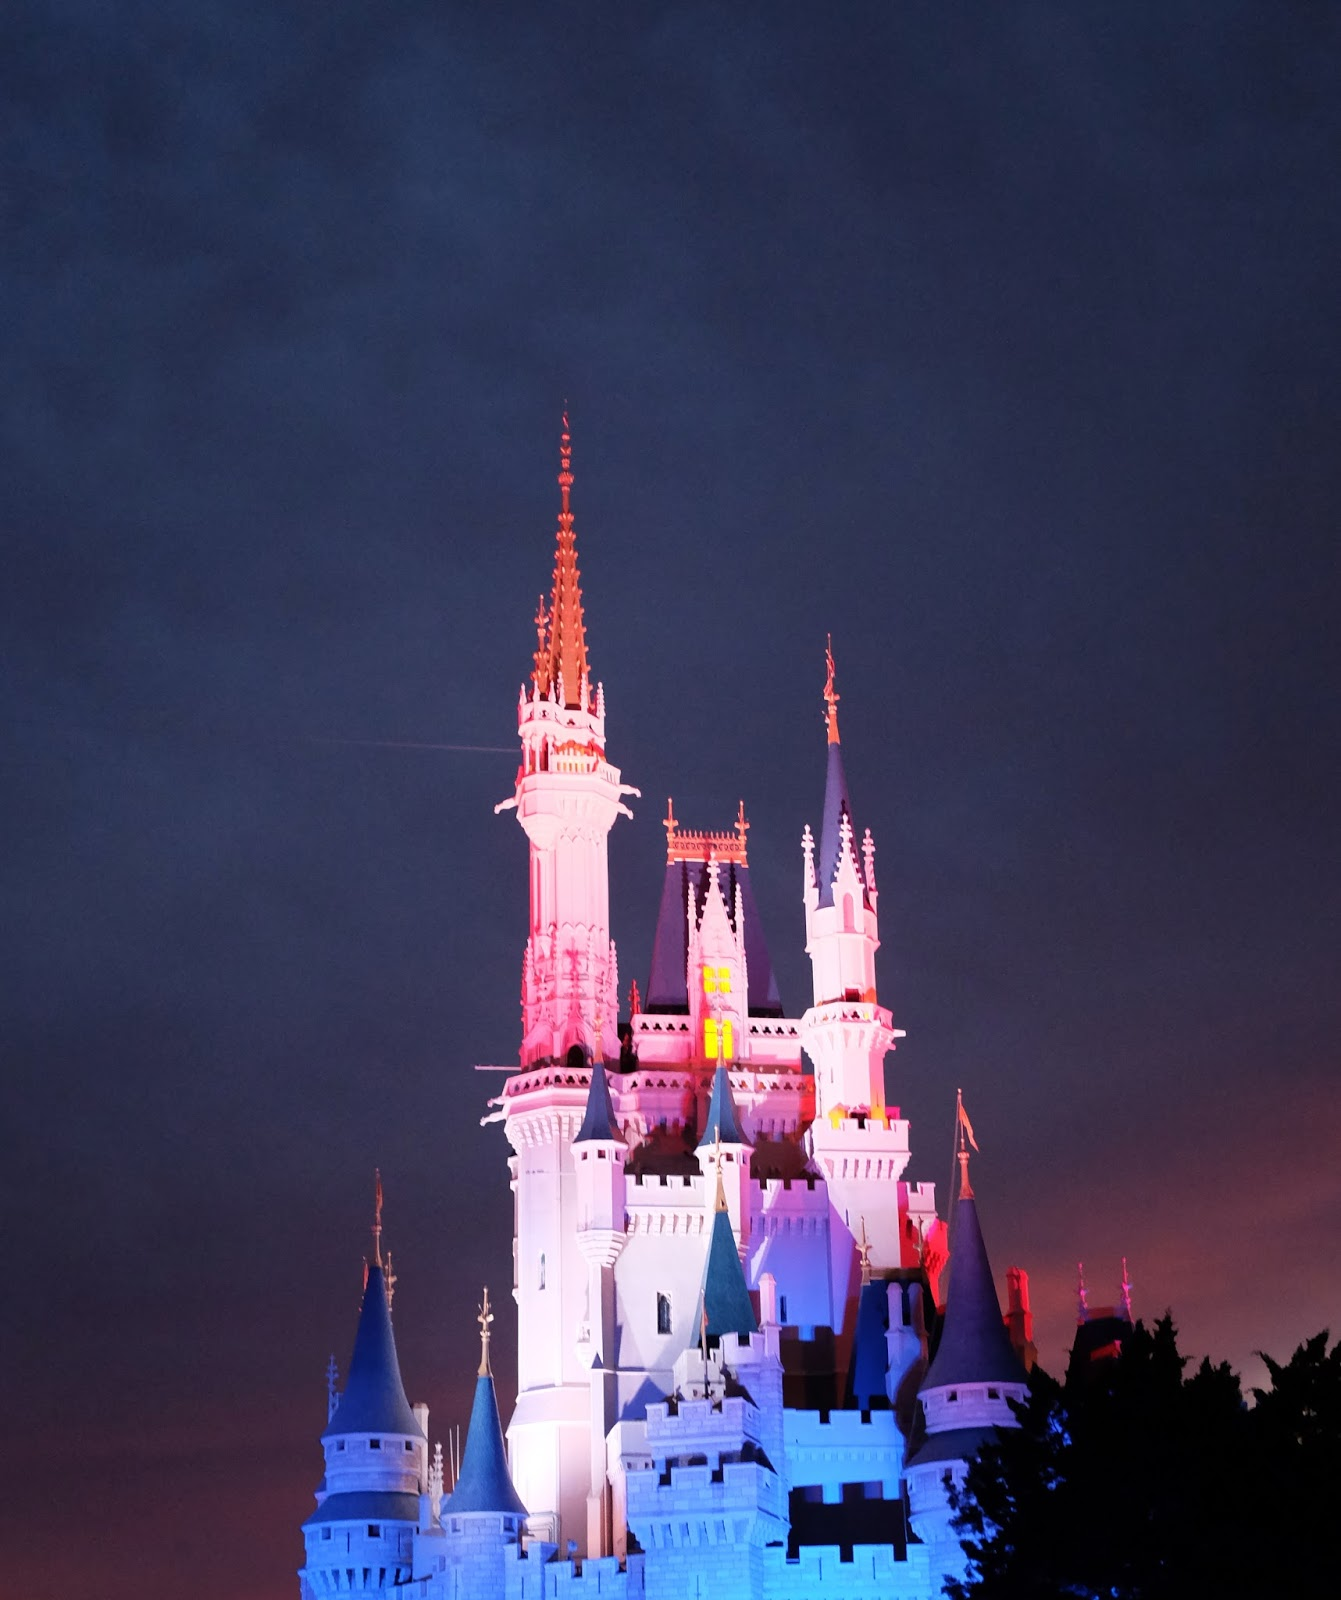 Cinderella Castle on Independence Day